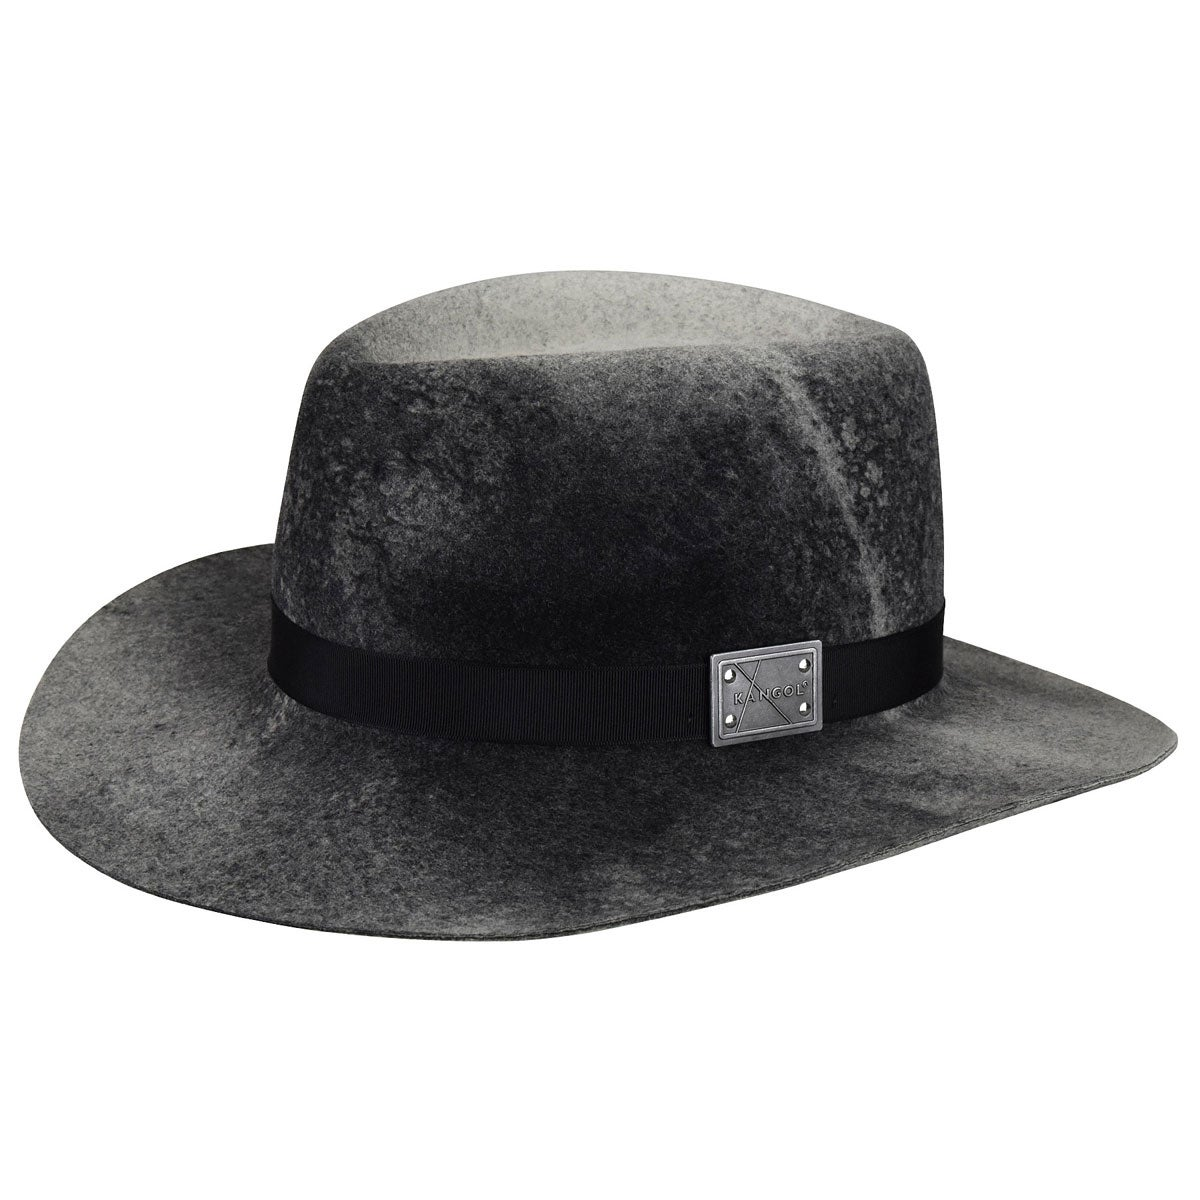 Kangol Aged Barclay Trilby in Black